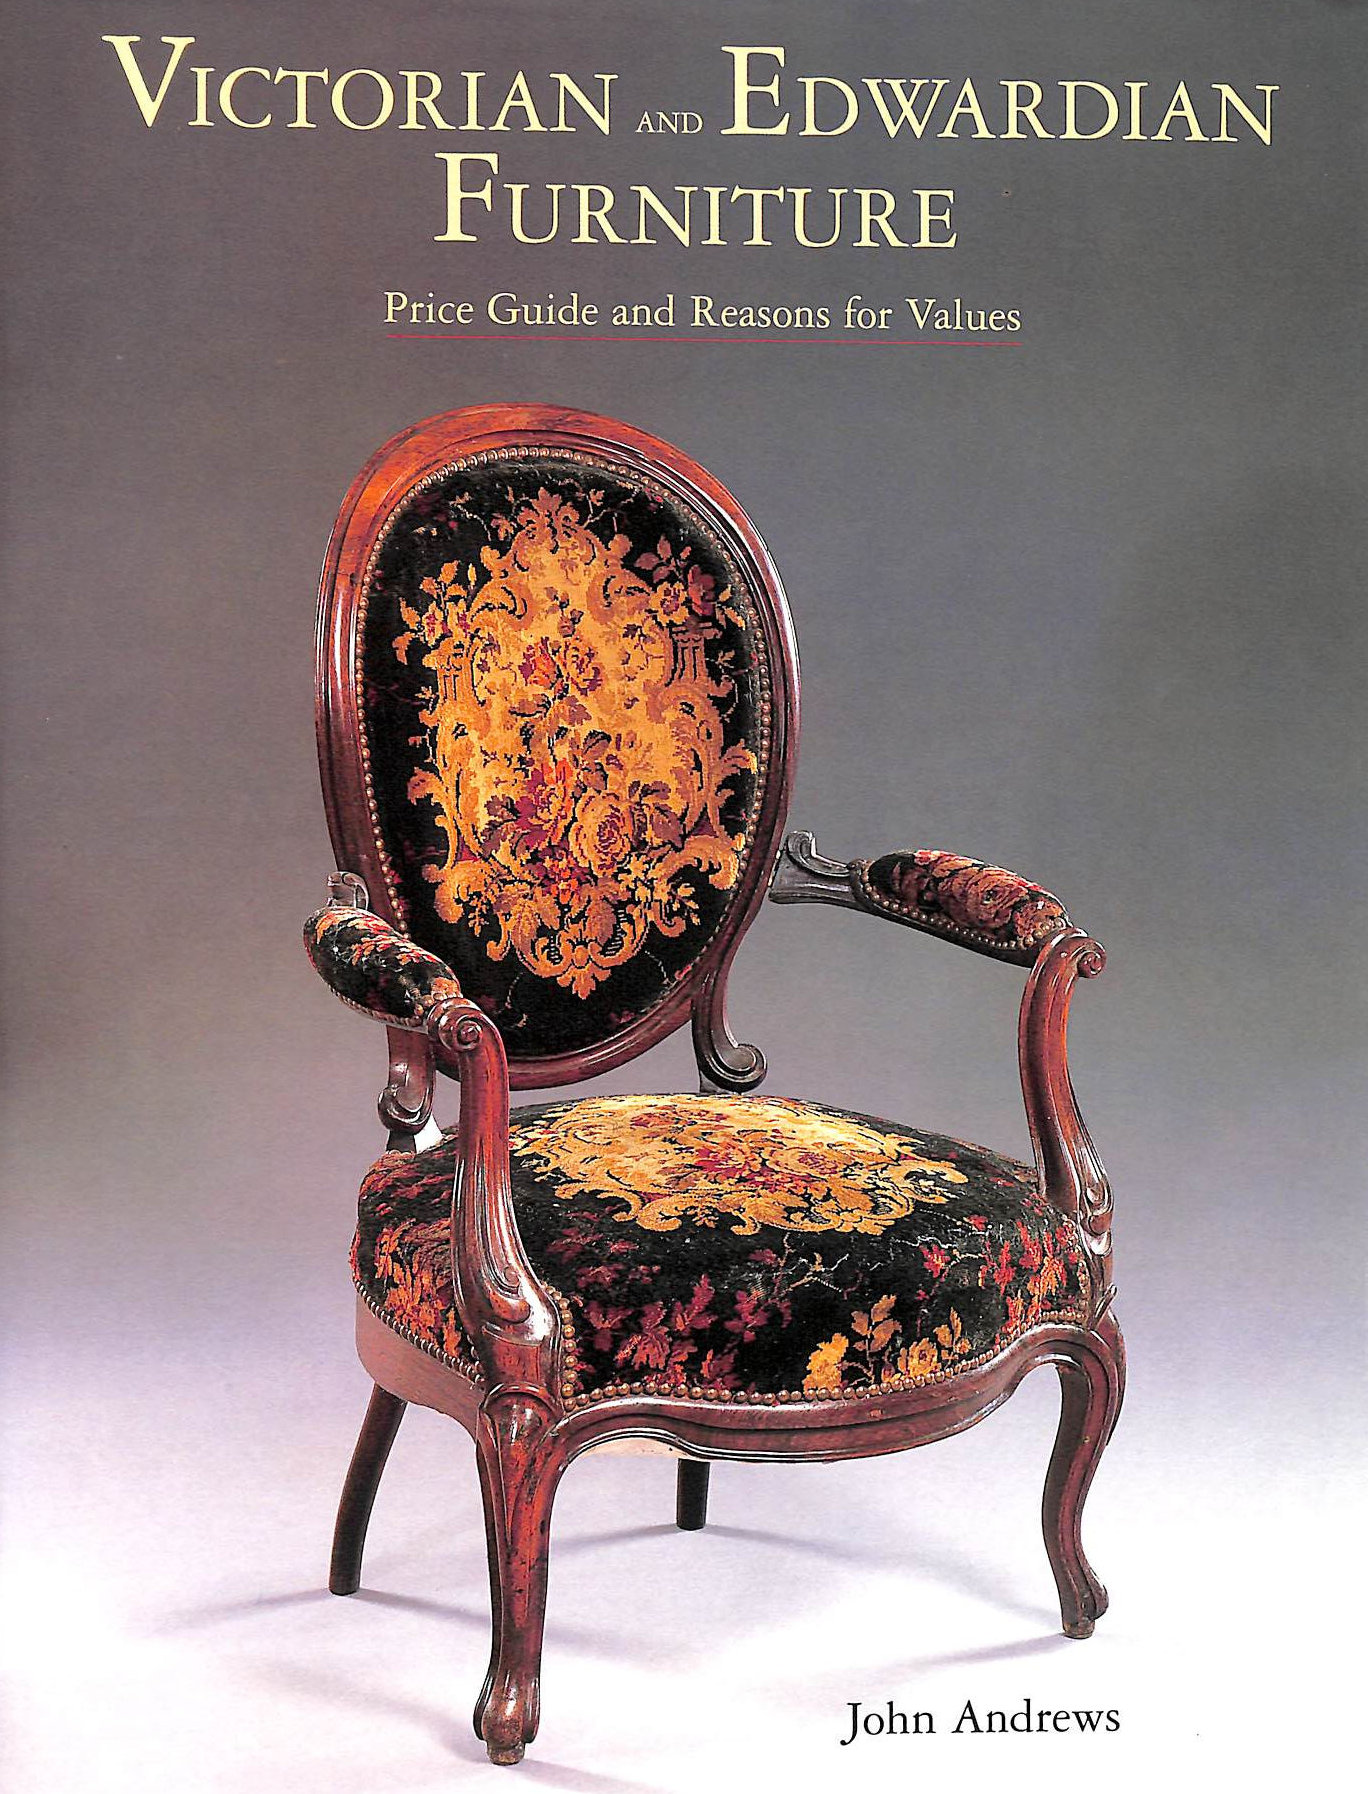 Image for Victorian and Edwardian Furniture 2001: Price Guide and Reasons for Values